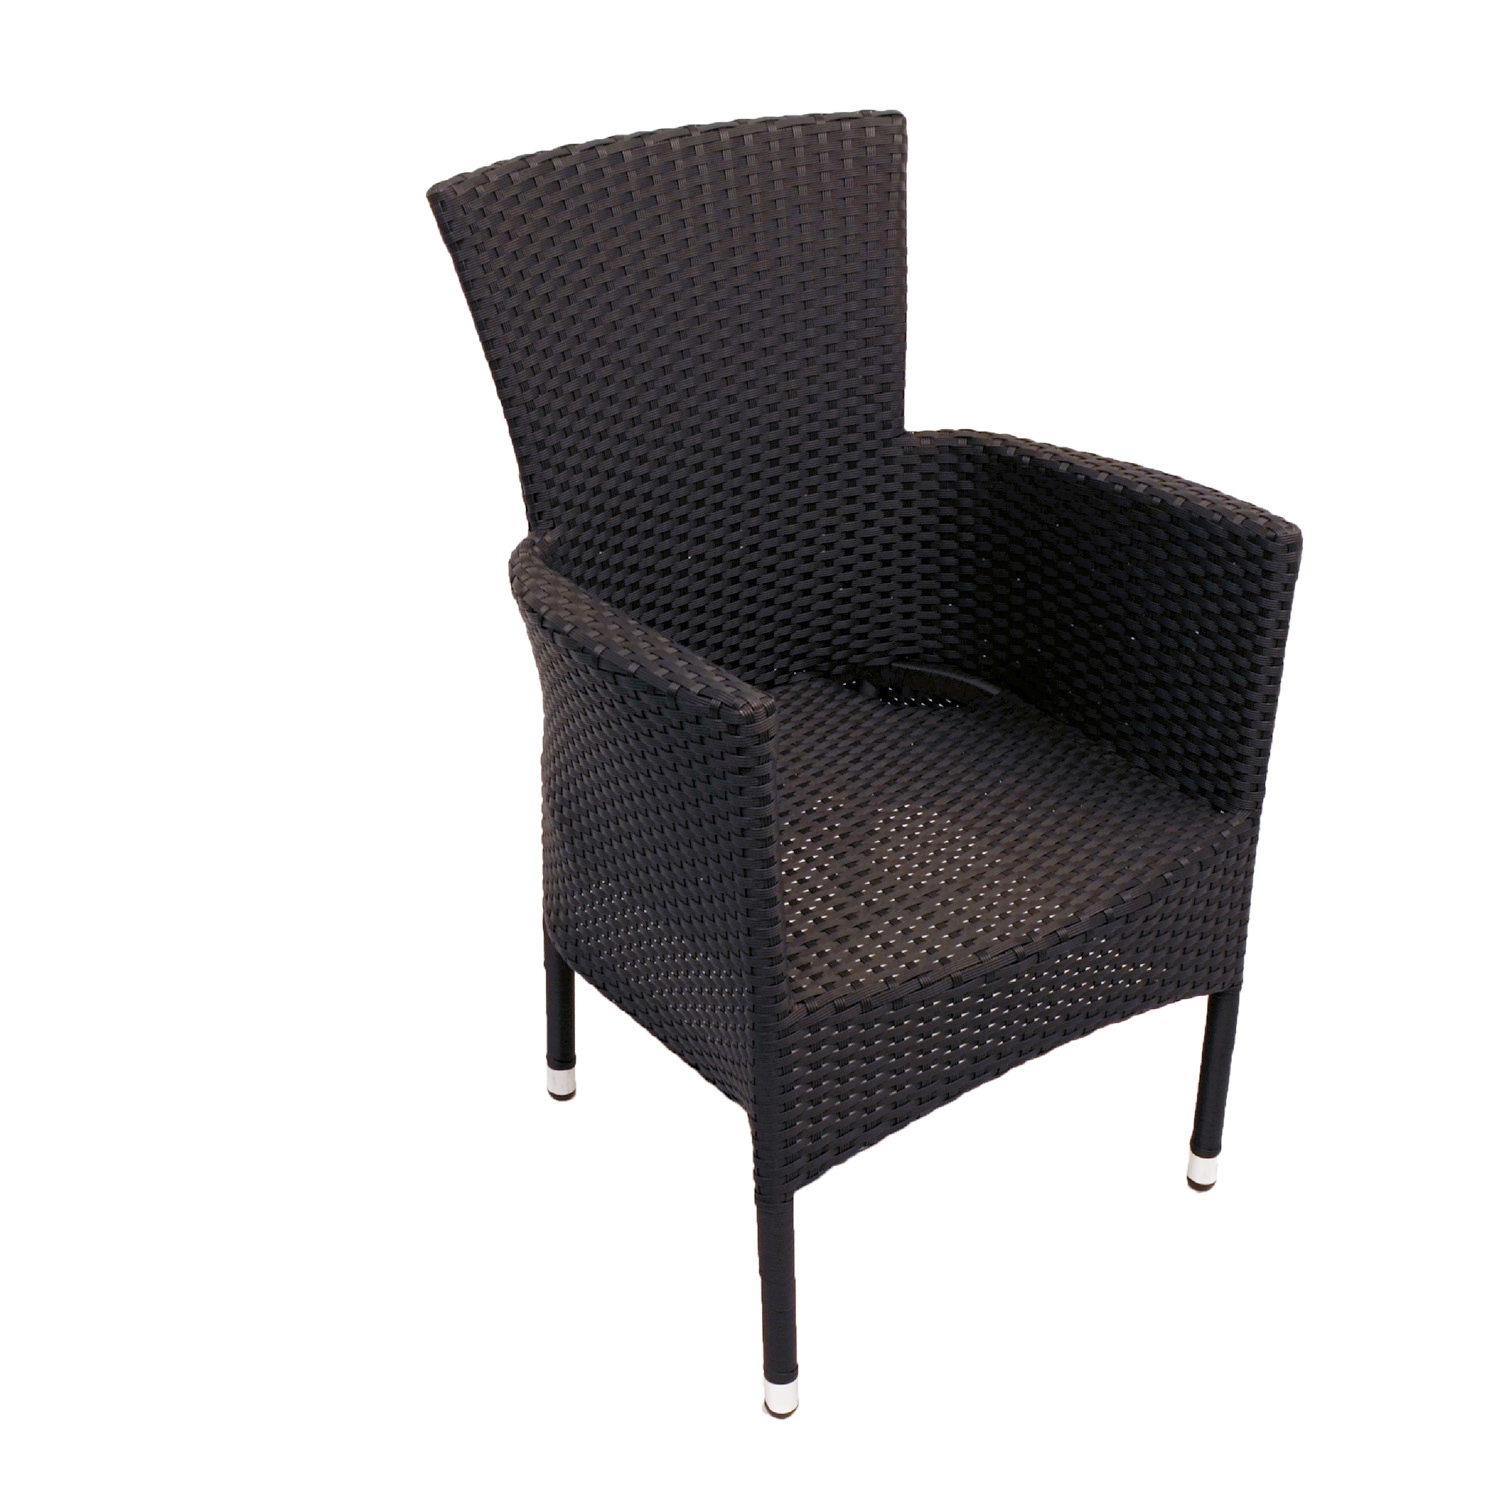 STOCKHOLM CHAIR BLACK FRONT RIGHT UNDRESSED